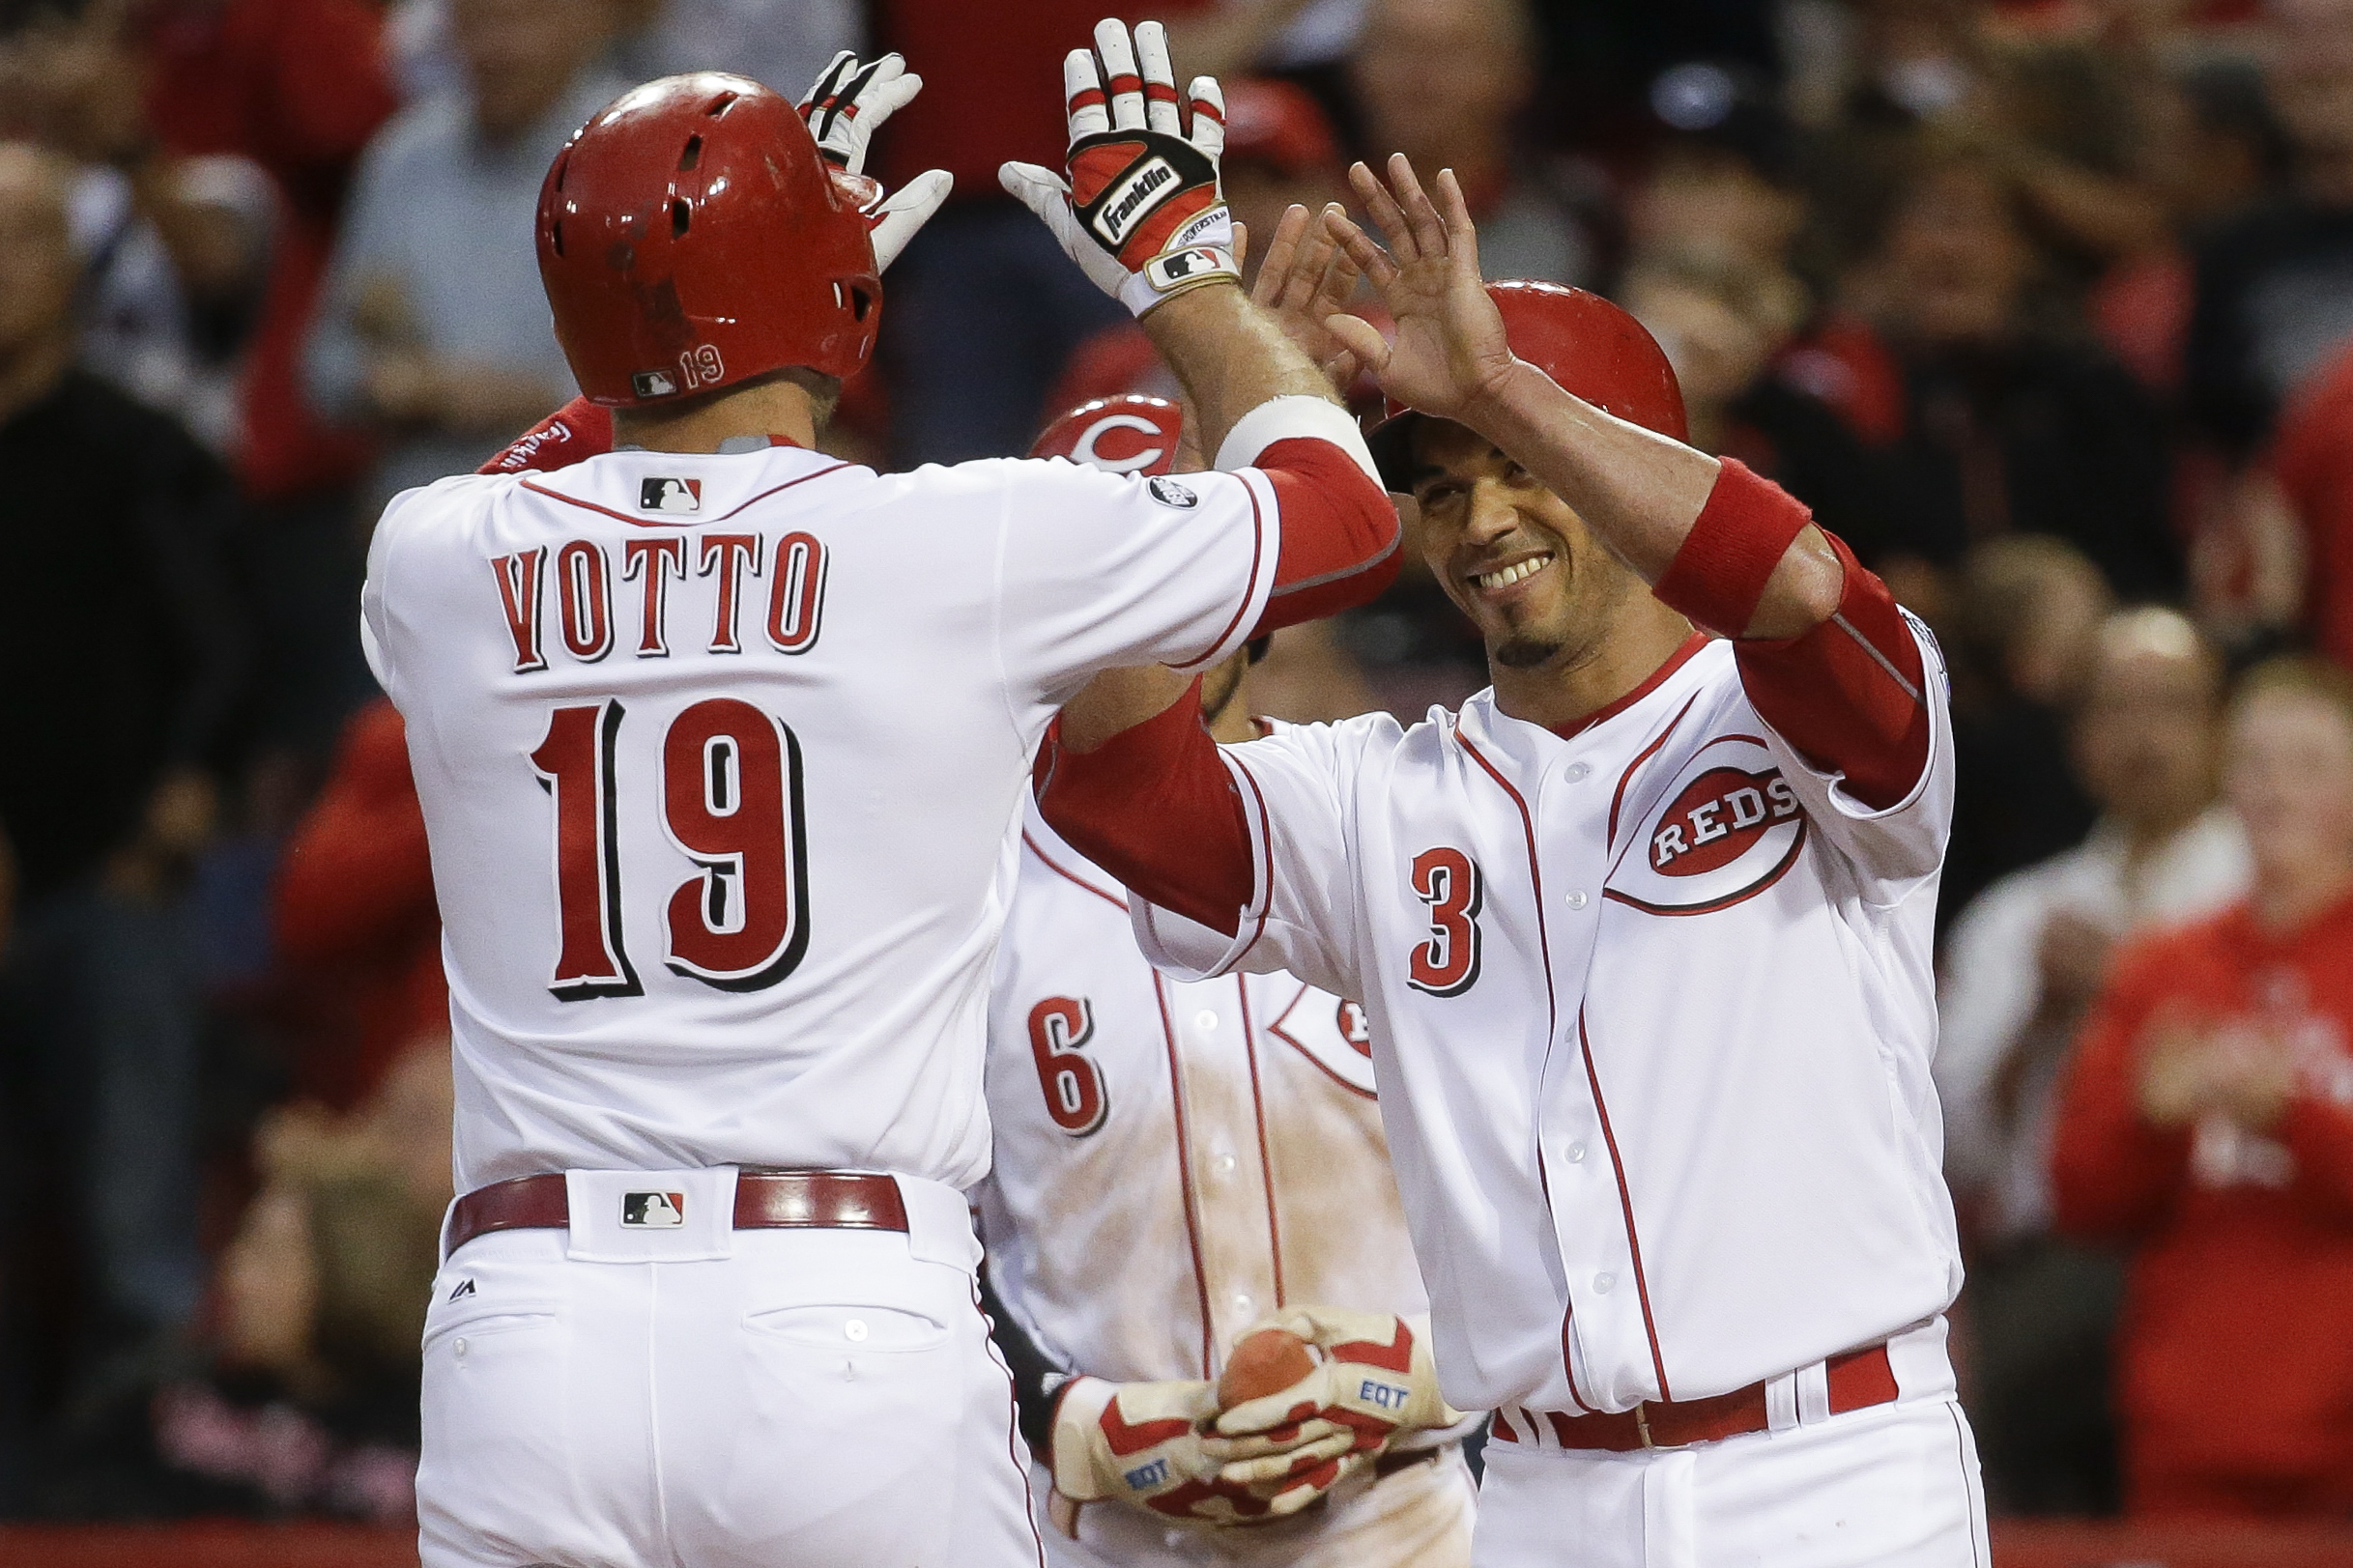 Cincinnati Reds' Joey Votto (19) celebrates hitting a three-run home run off San Francisco Giants starting pitcher Johnny Cueto (47) with Ivan De Jesus (3) and Billy Hamilton (6) in the third inning of a baseball game, Monday, May 2, 2016, in Cincinnati.